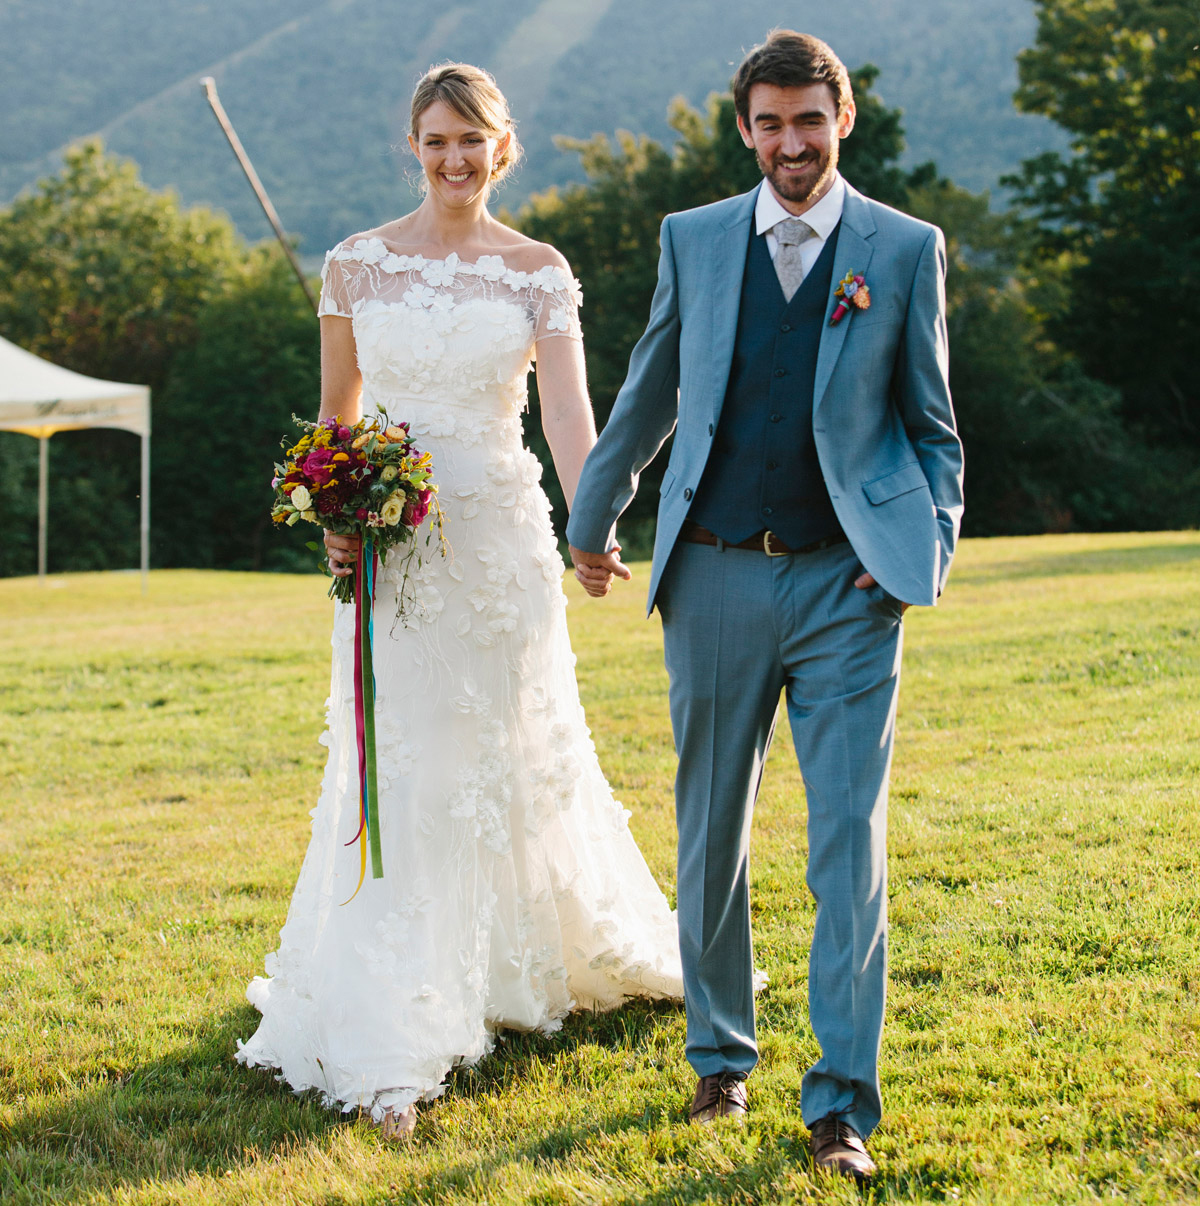 Custom wedding gown, netting appliqued with flowers, made in Vermont